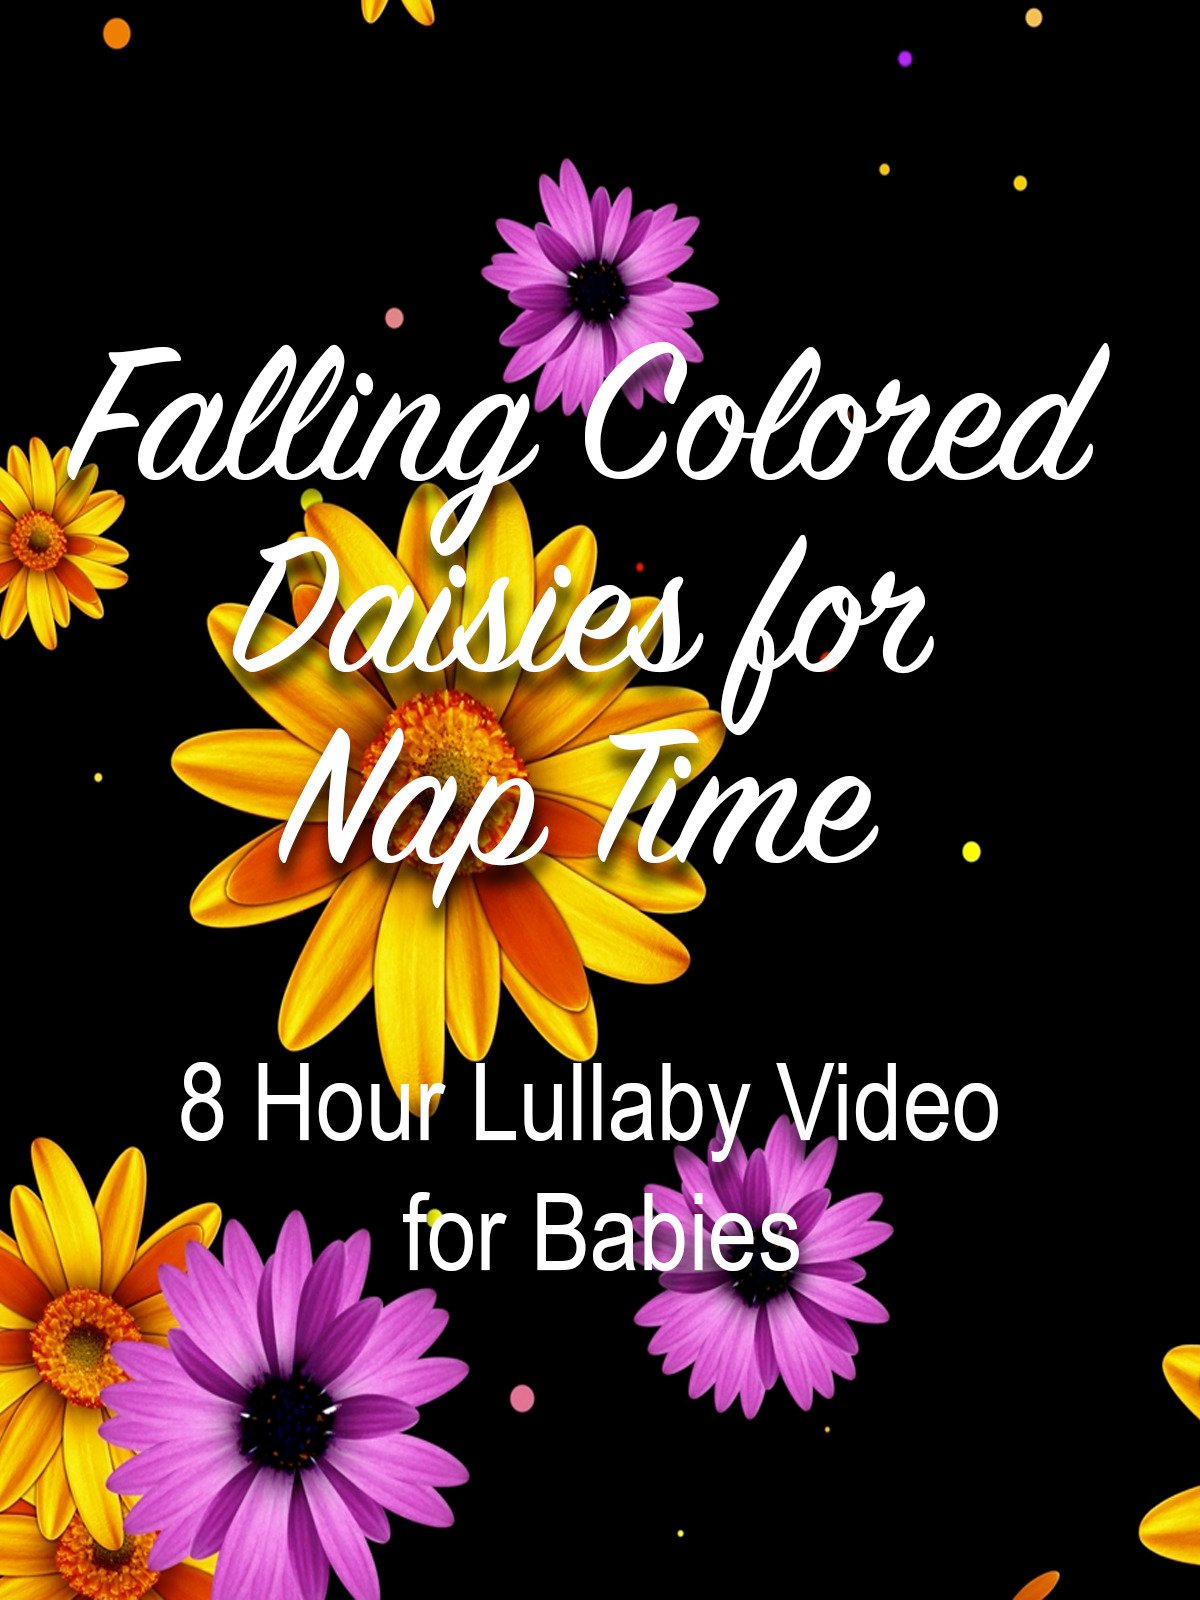 Falling Colored Daisies for Nap Time 8 Hour lullaby Video for Babies